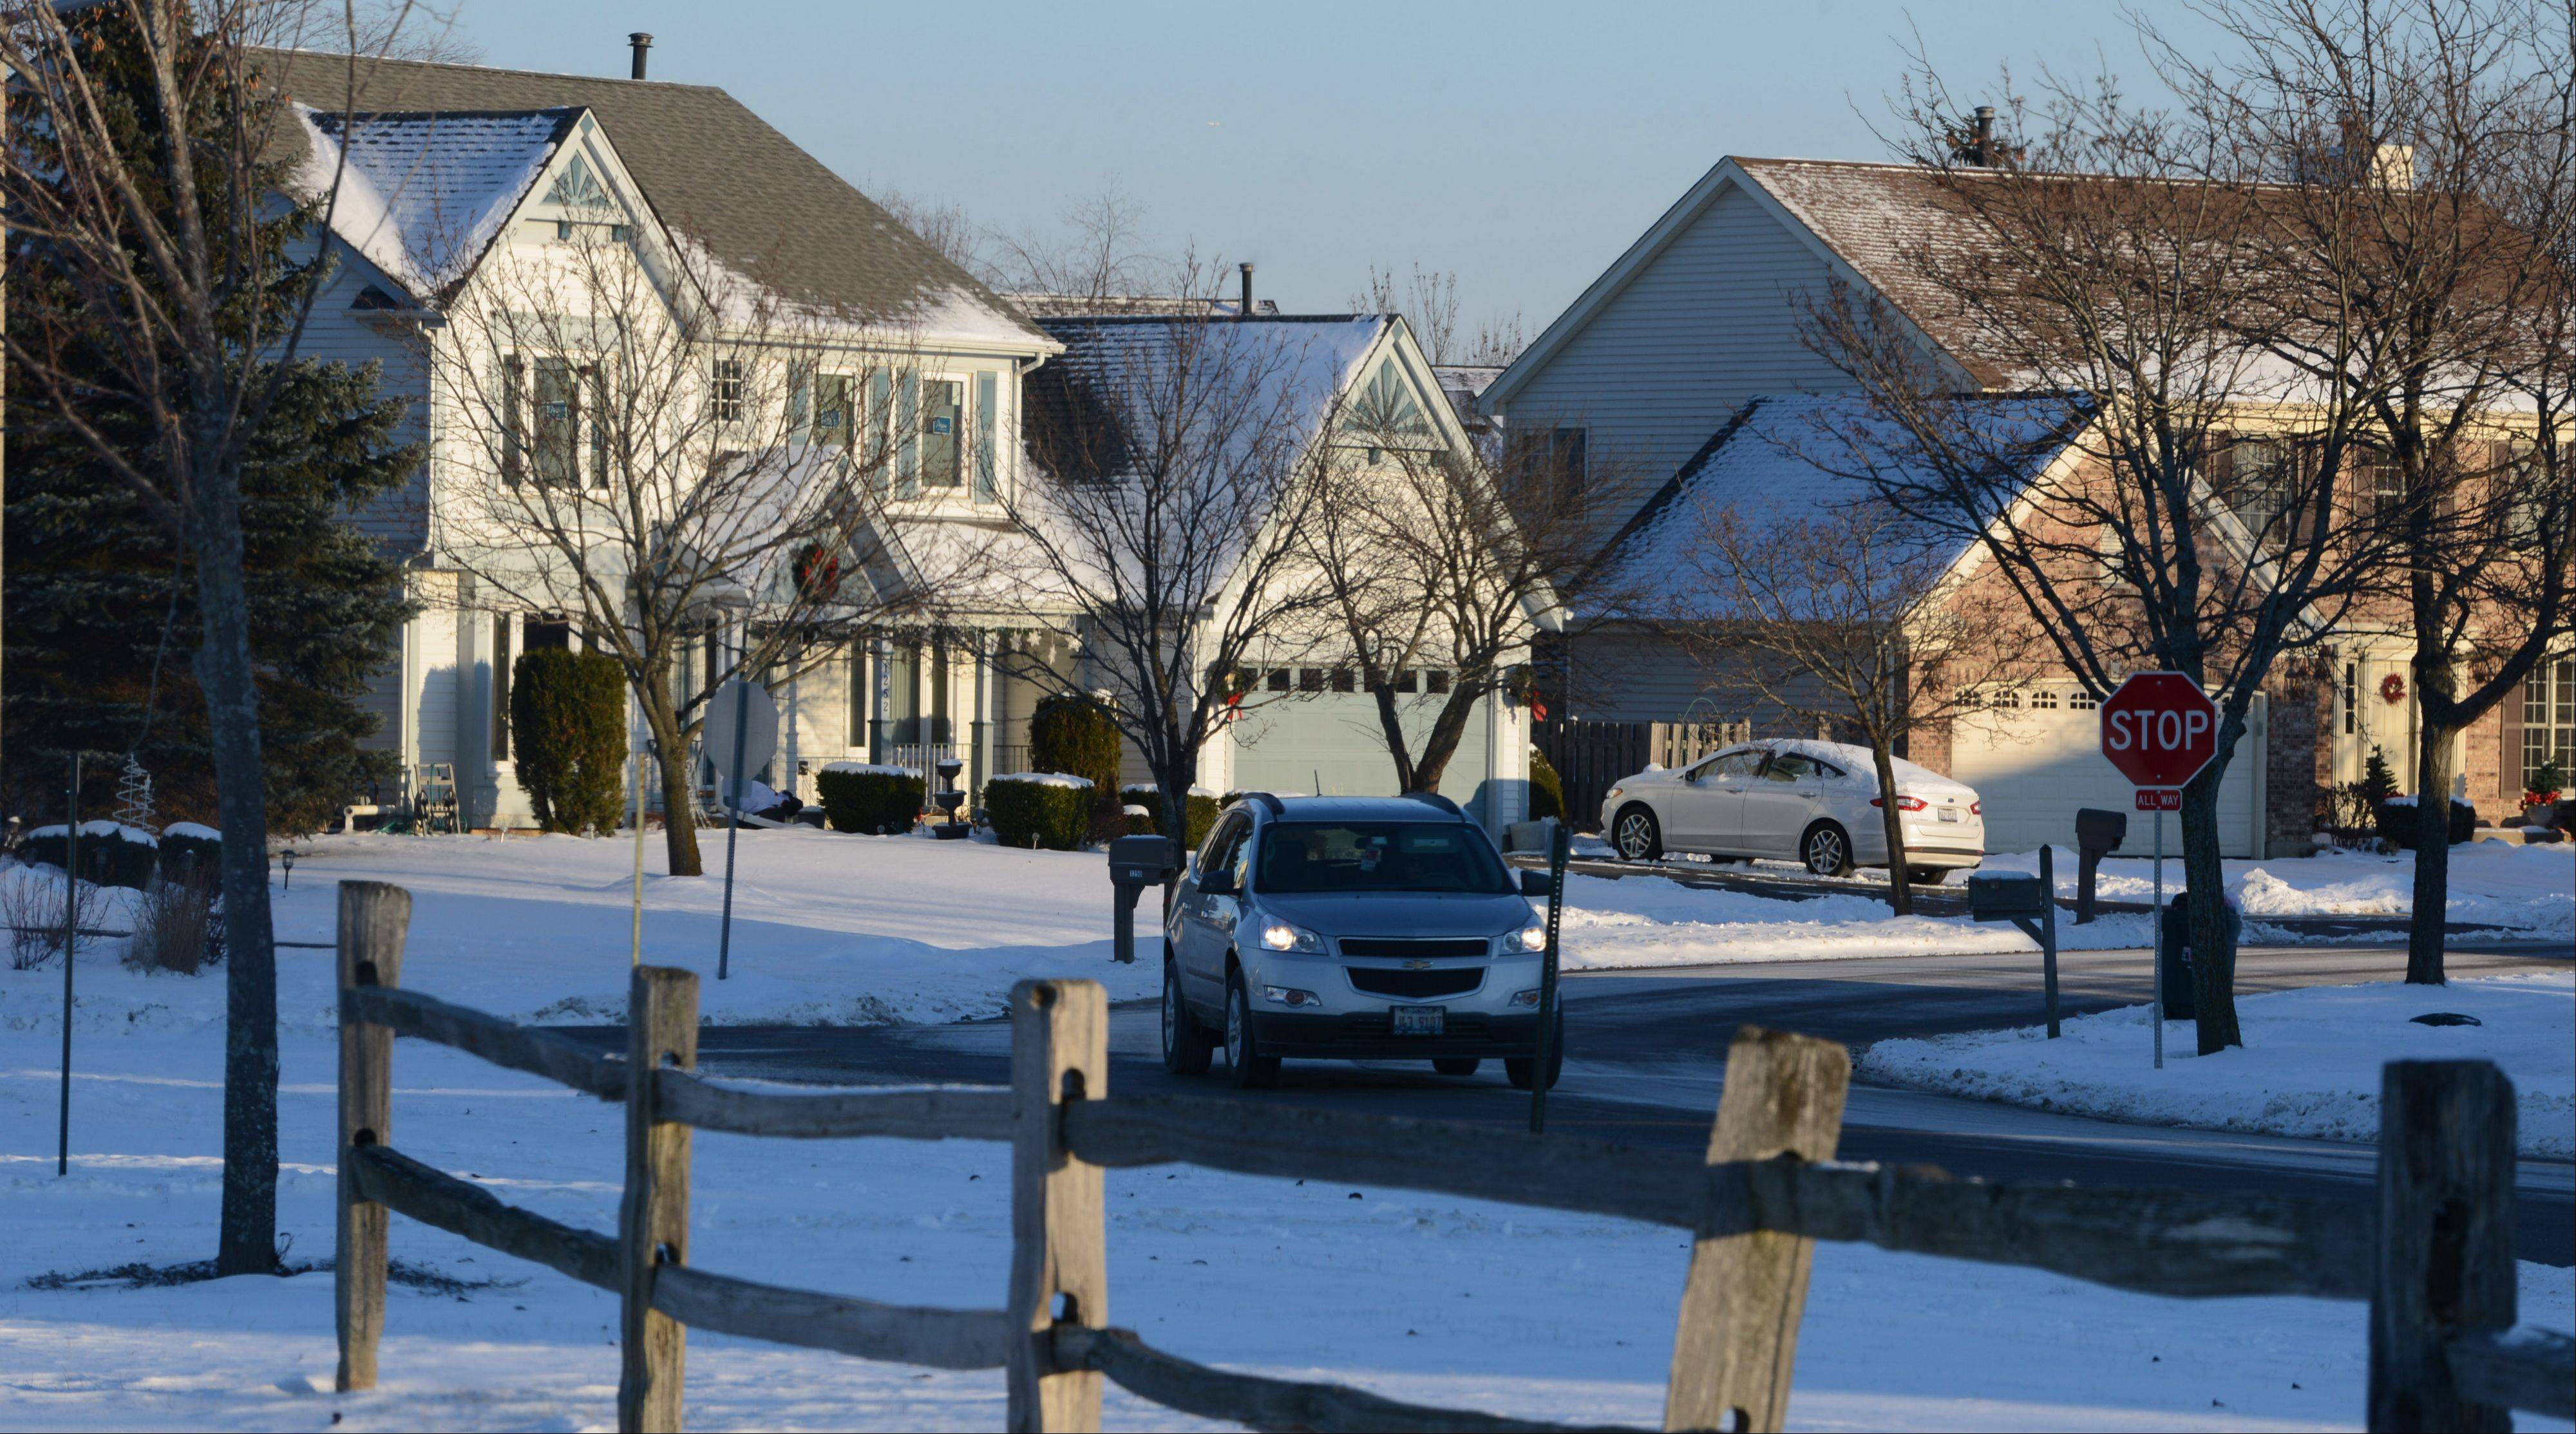 Two-story homes along Pheasant Ridge Drive are typical of those found in the Chestnut corners subdivision.